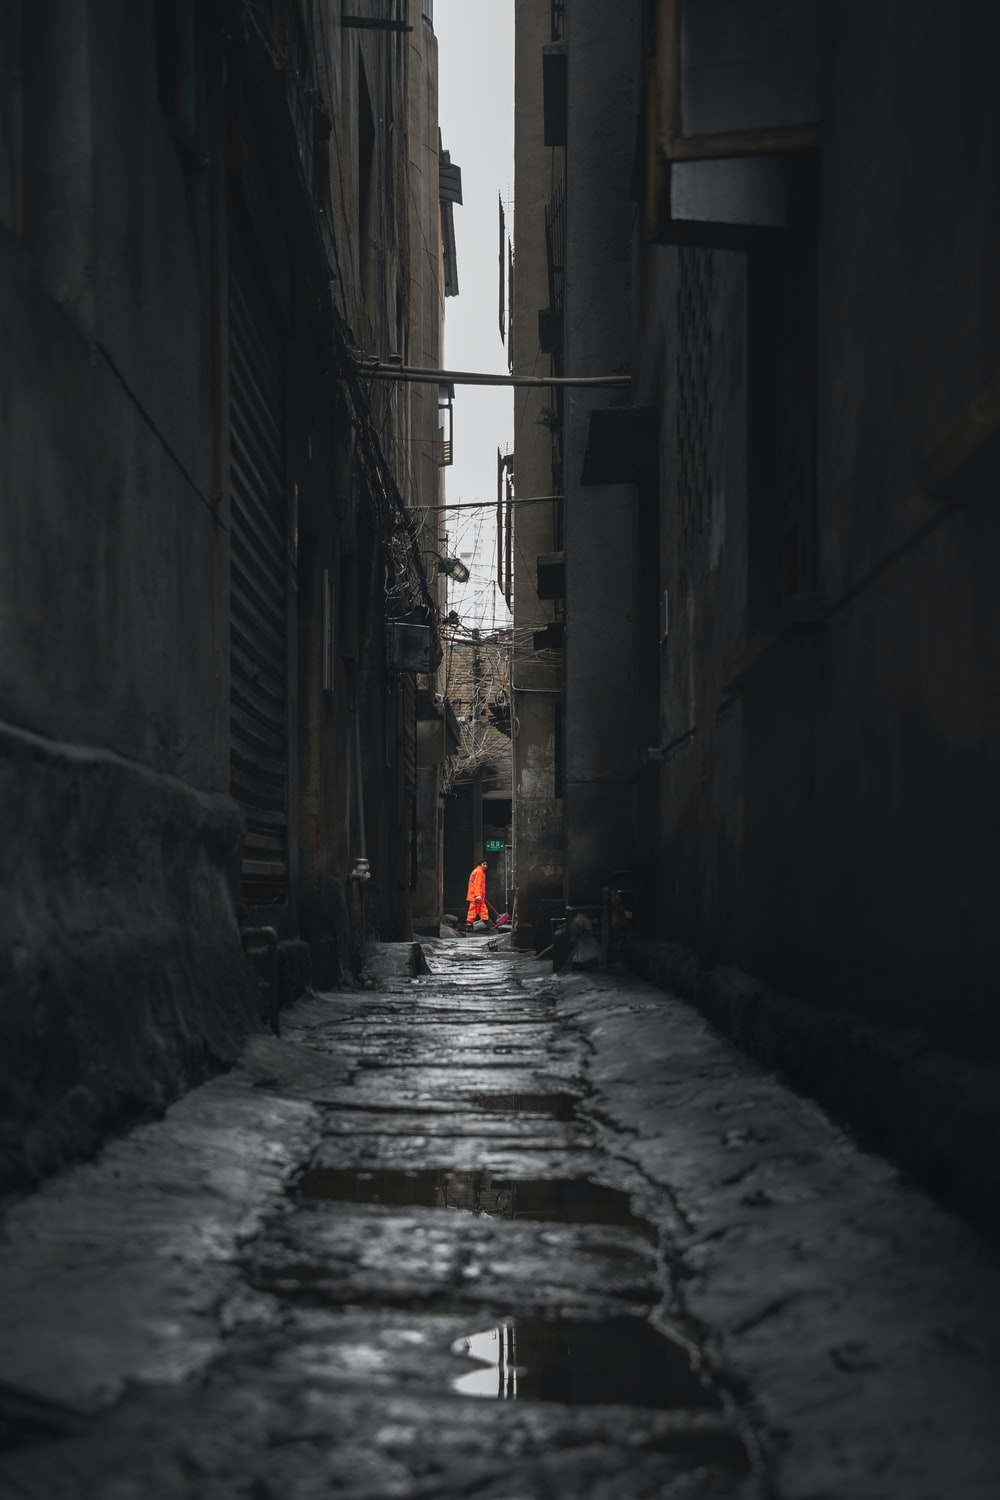 person in red jacket walking on street during daytime